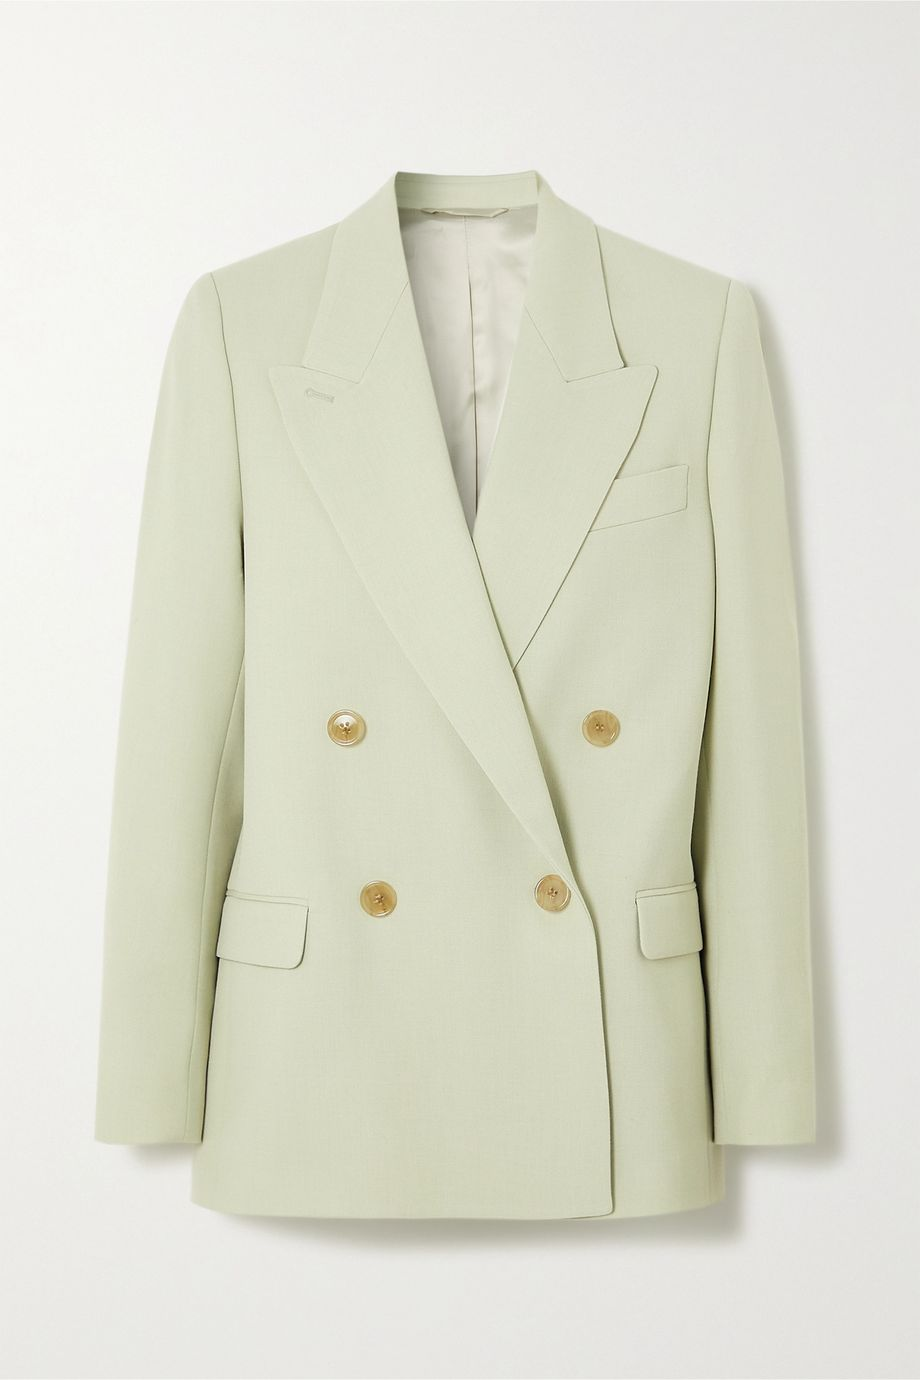 Acne Studios Double-breasted canvas blazer